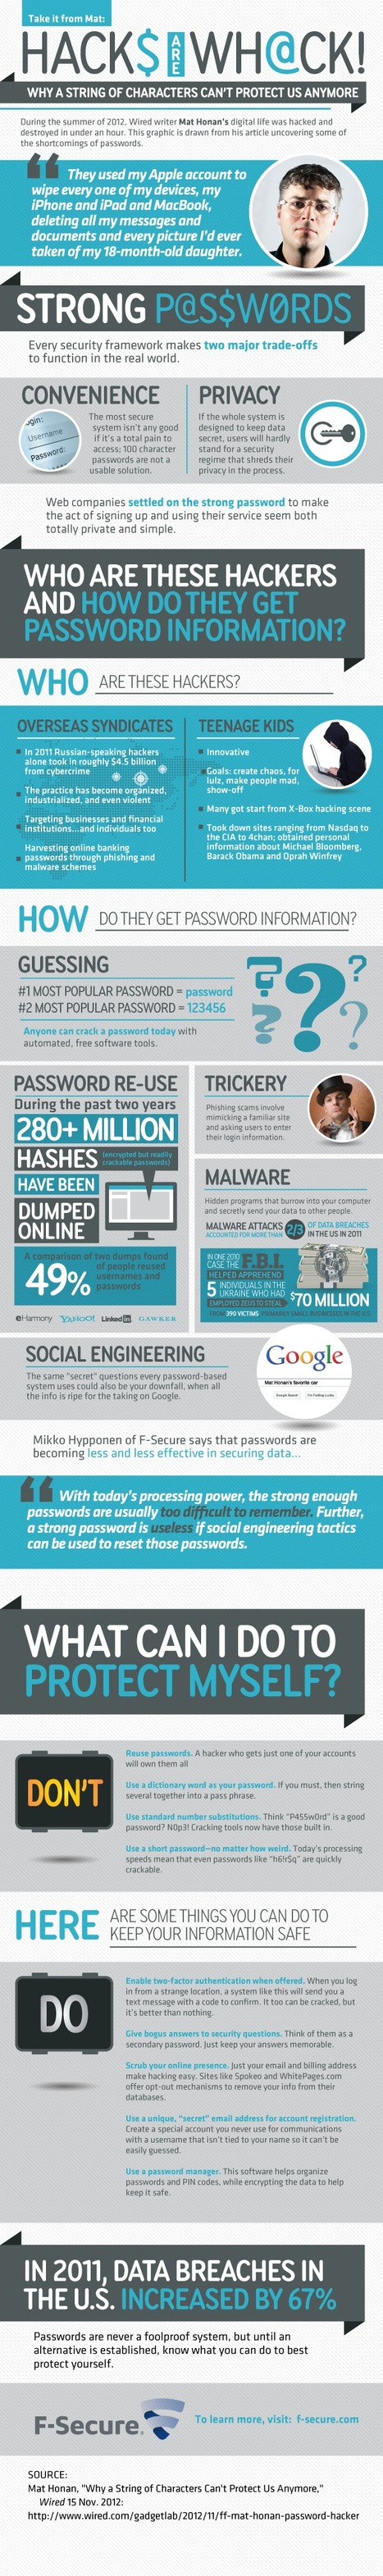 Hacking lessons learned: how to cover your digital ass [Infographic] | Didactics and Technology in Education | Scoop.it